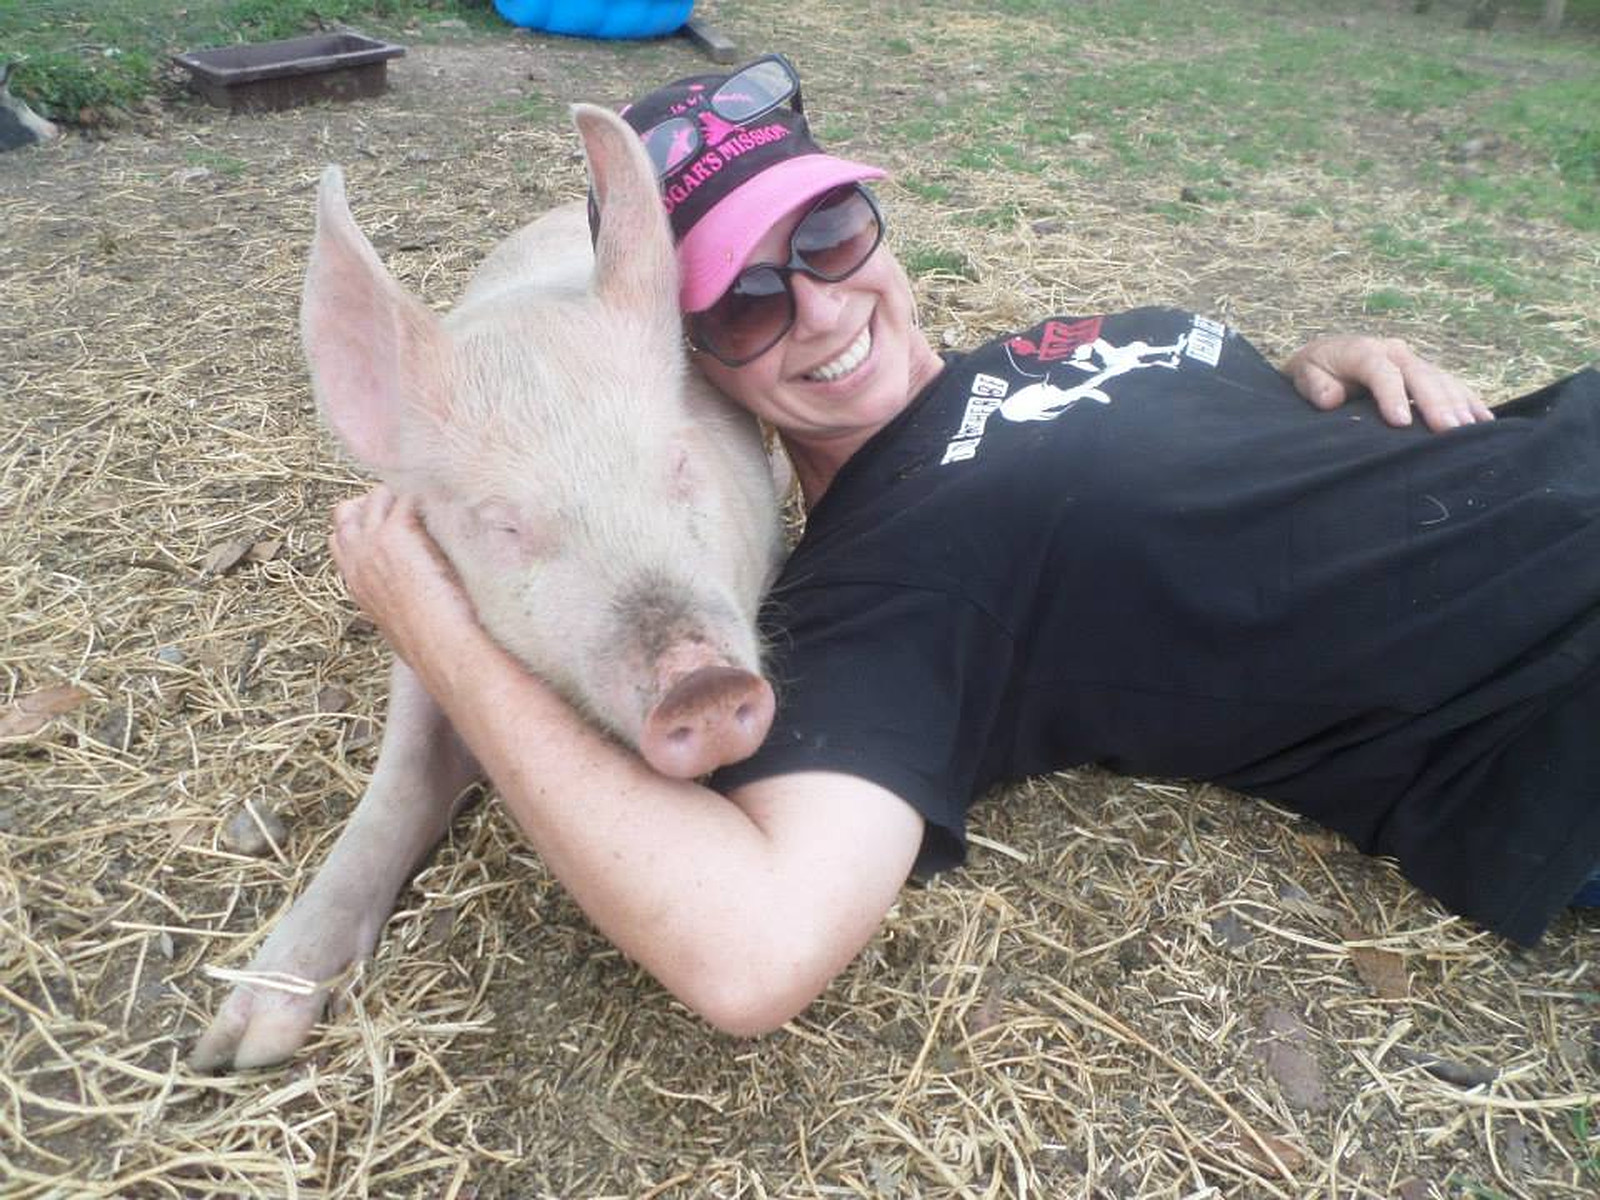 This Courageous Farm Animal Sanctuary Founder Has Terminal Brain Cancer and Needs Your Help